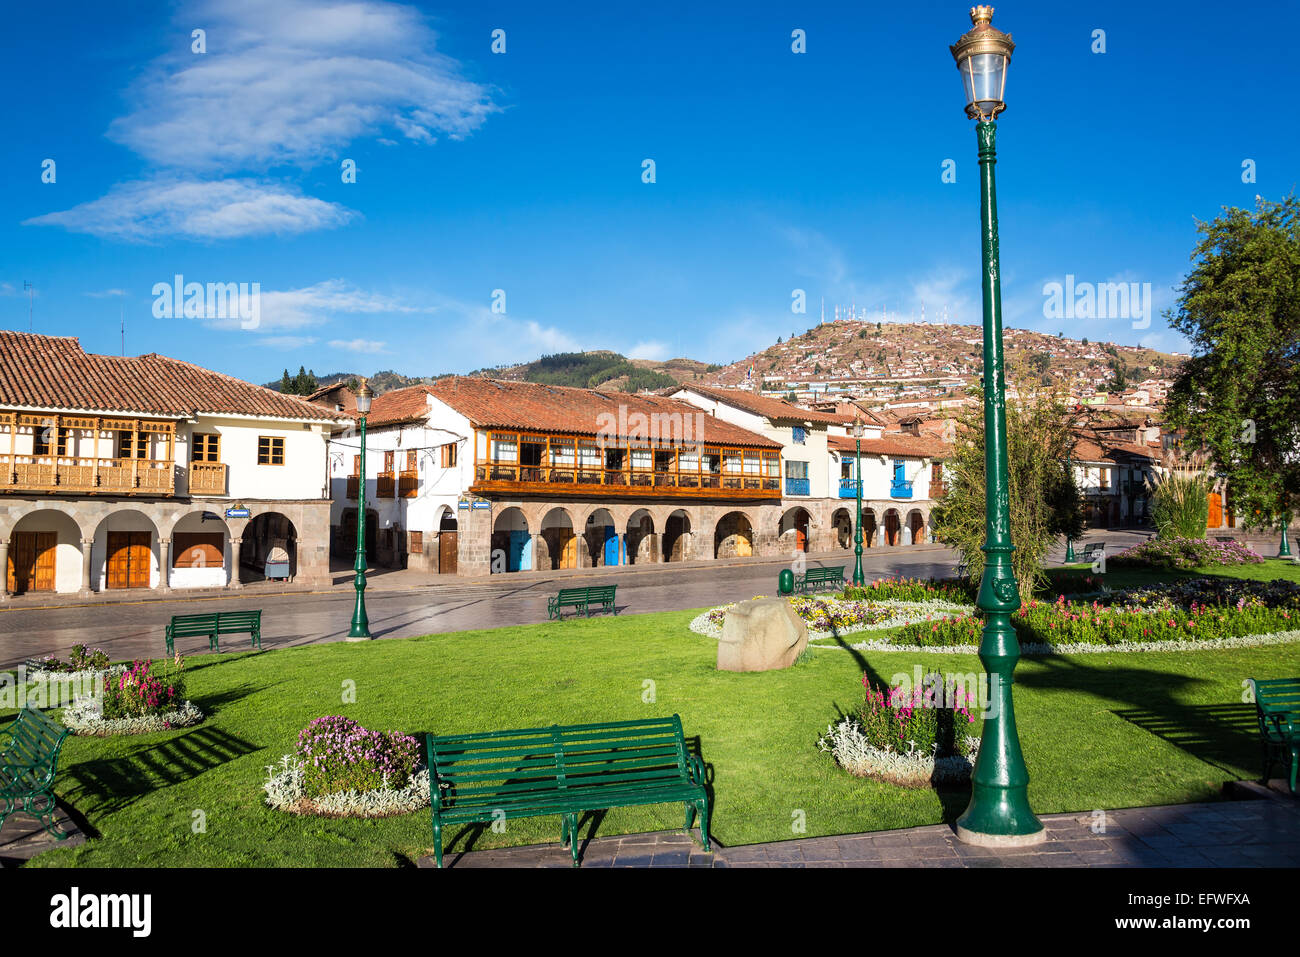 View of the Plaza de Armas of Cuzco, Peru with beautiful colonial architecture visible - Stock Image